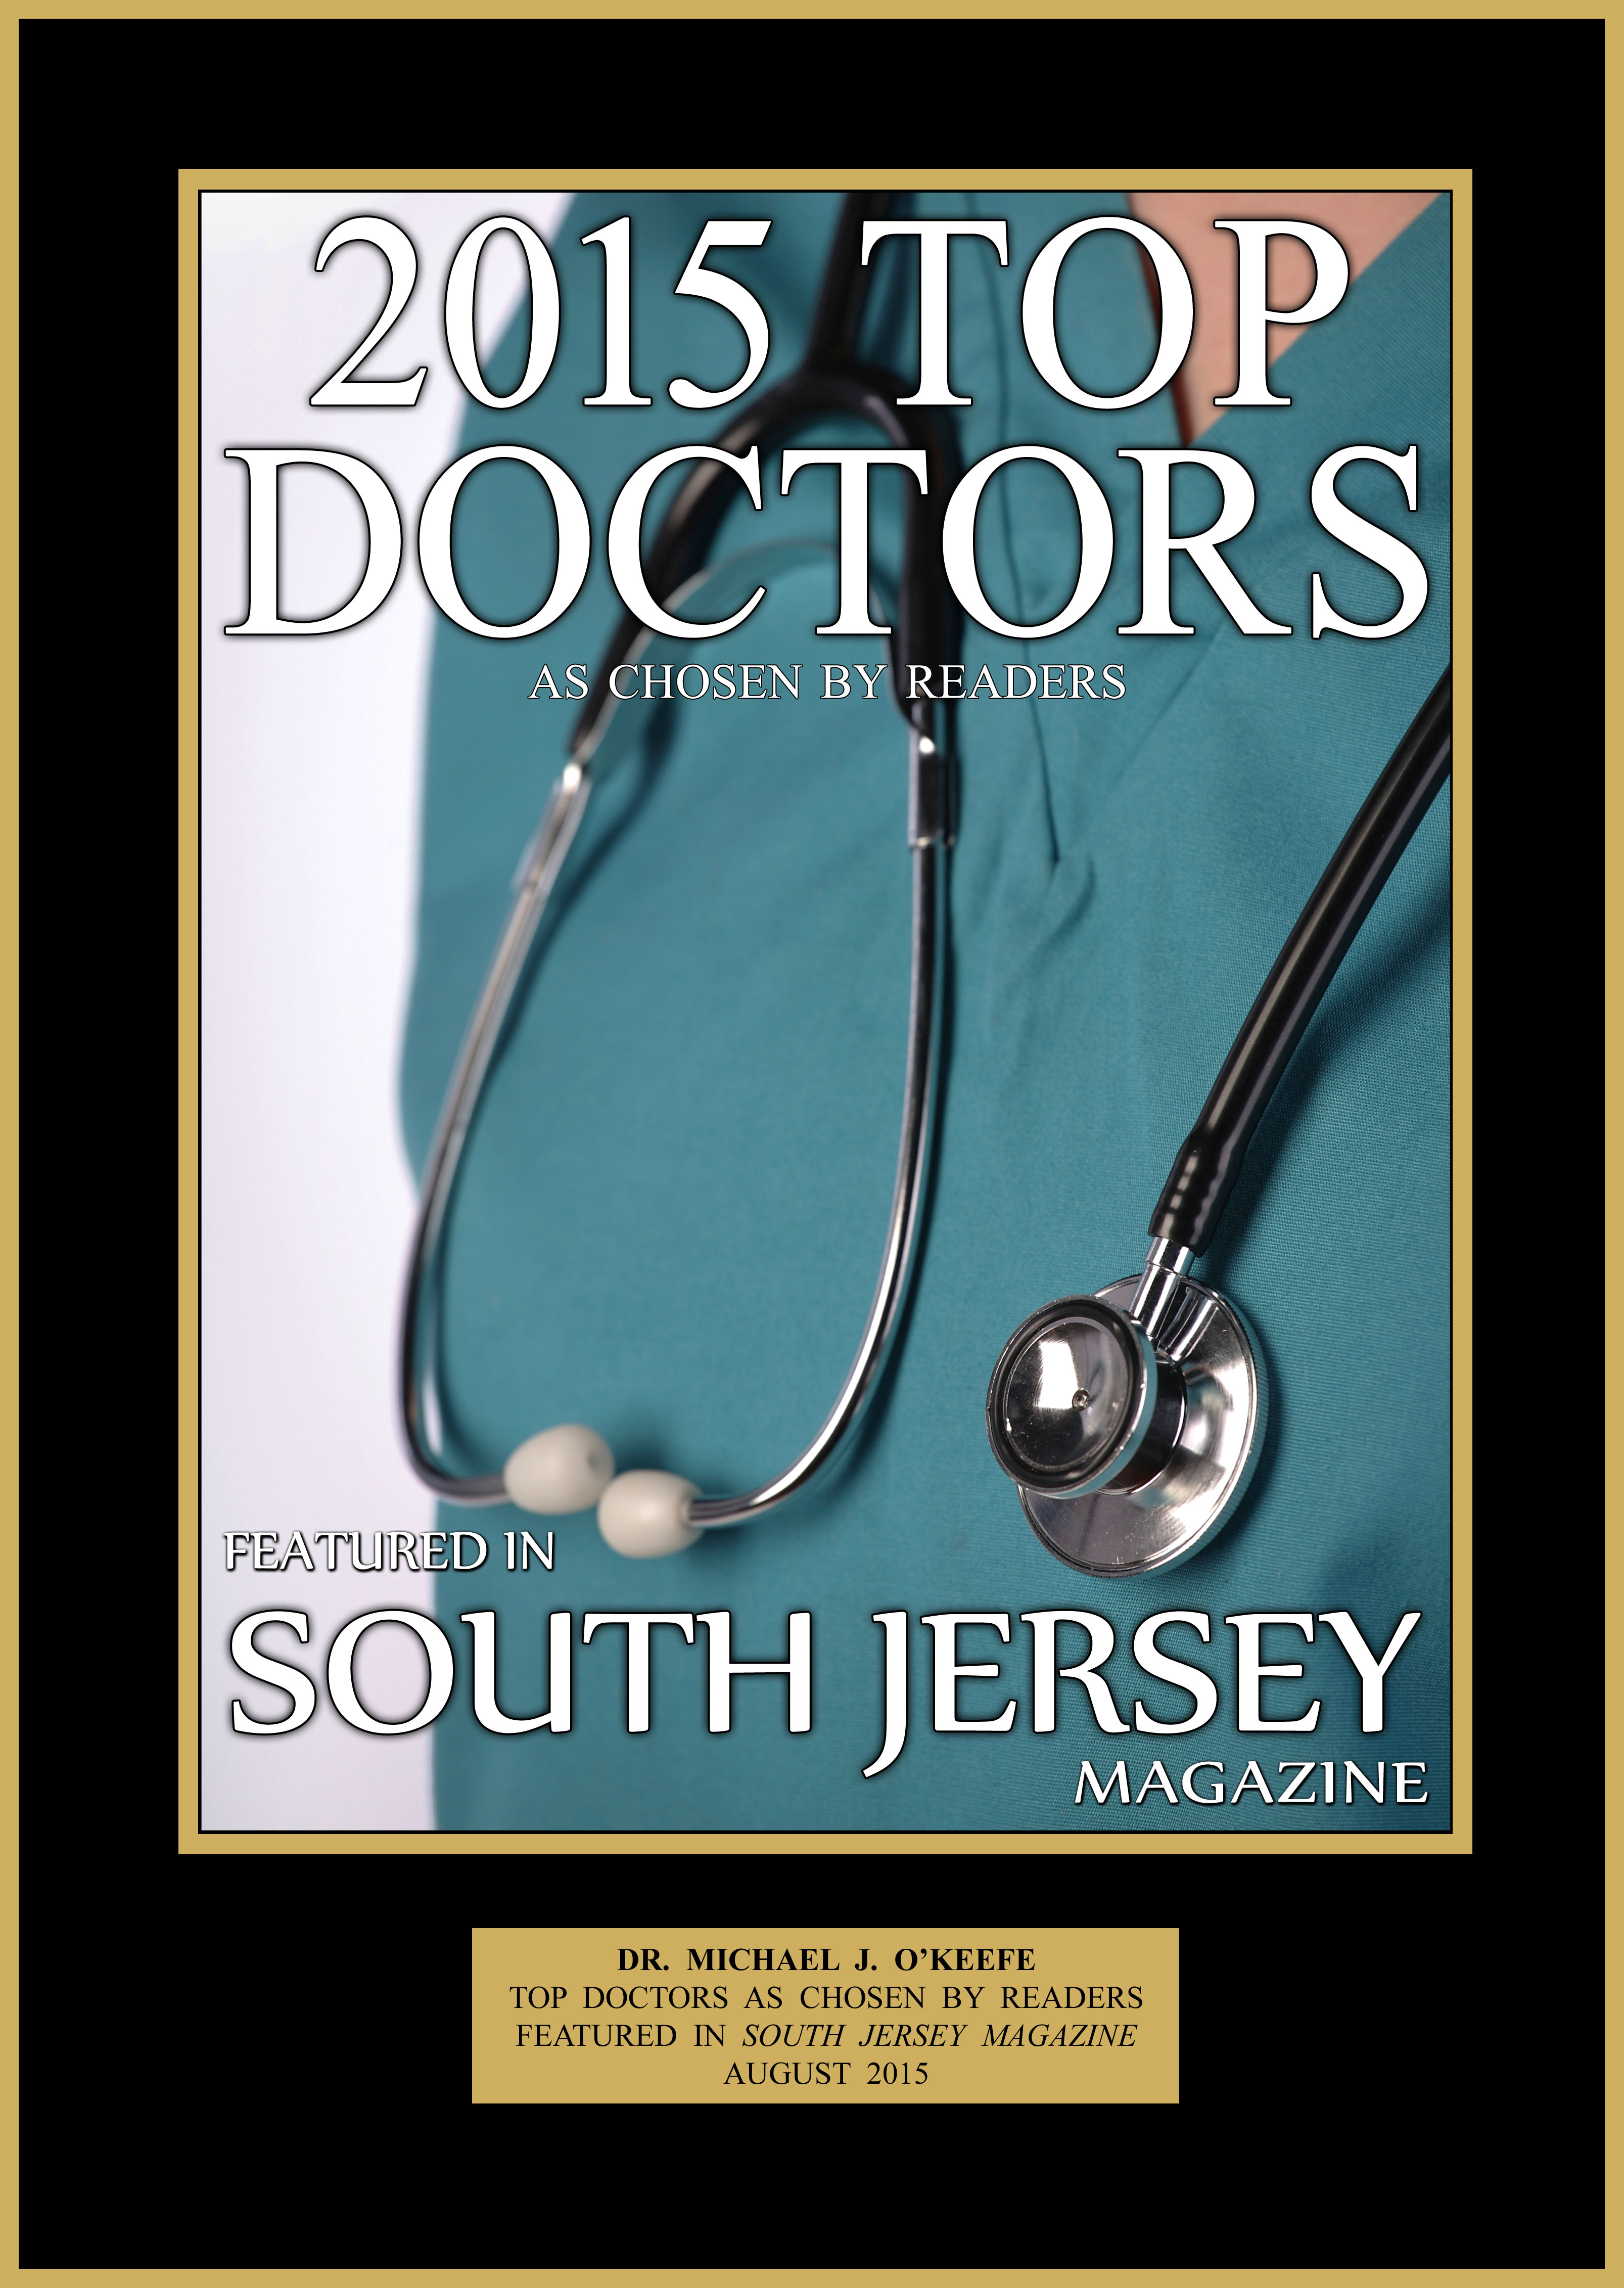 Dr. O'Keefe, South Jersey Top Physician